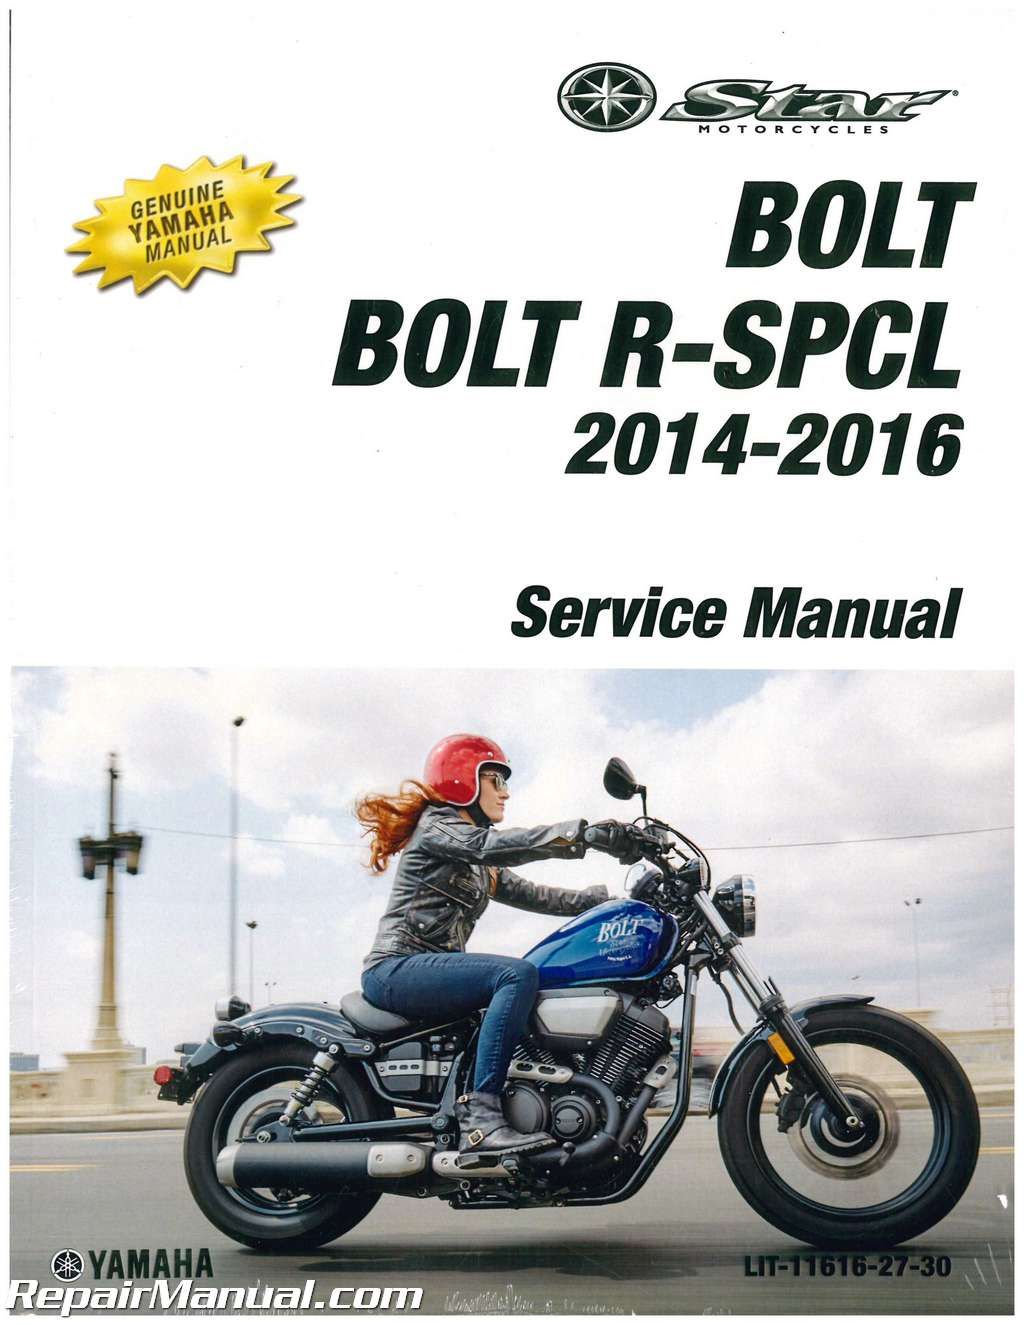 2014 2016 yamaha xvs95c bolt motorcycle service manual rh repairmanual com  2002 road star warrior service manual 2002 road star warrior service manual